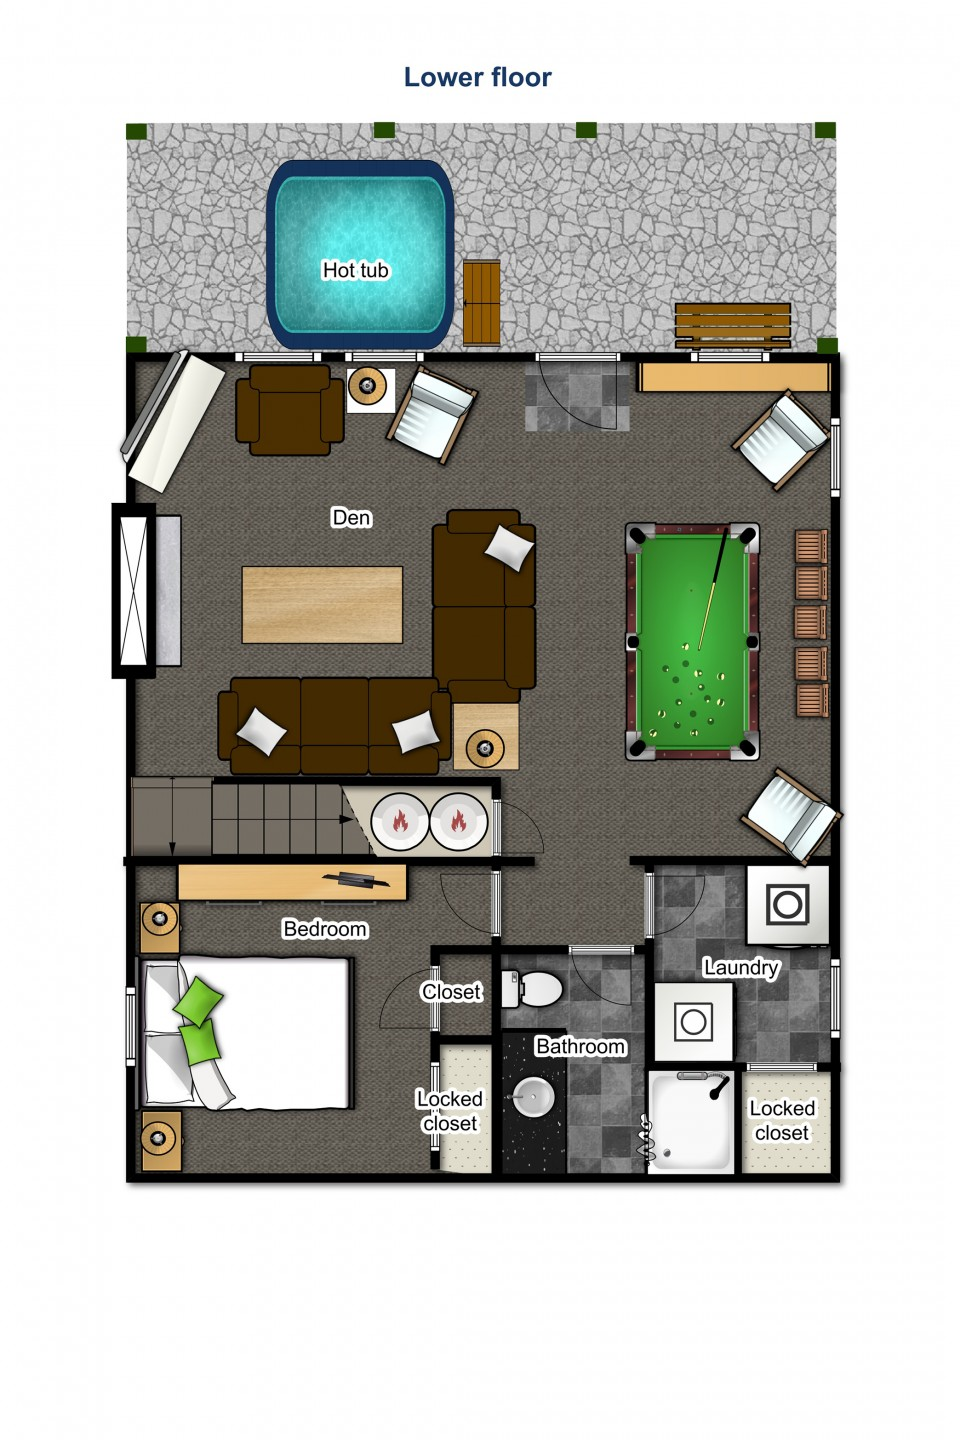 Lower floor — den, bedroom, bathroom, laundry and hot tub outside